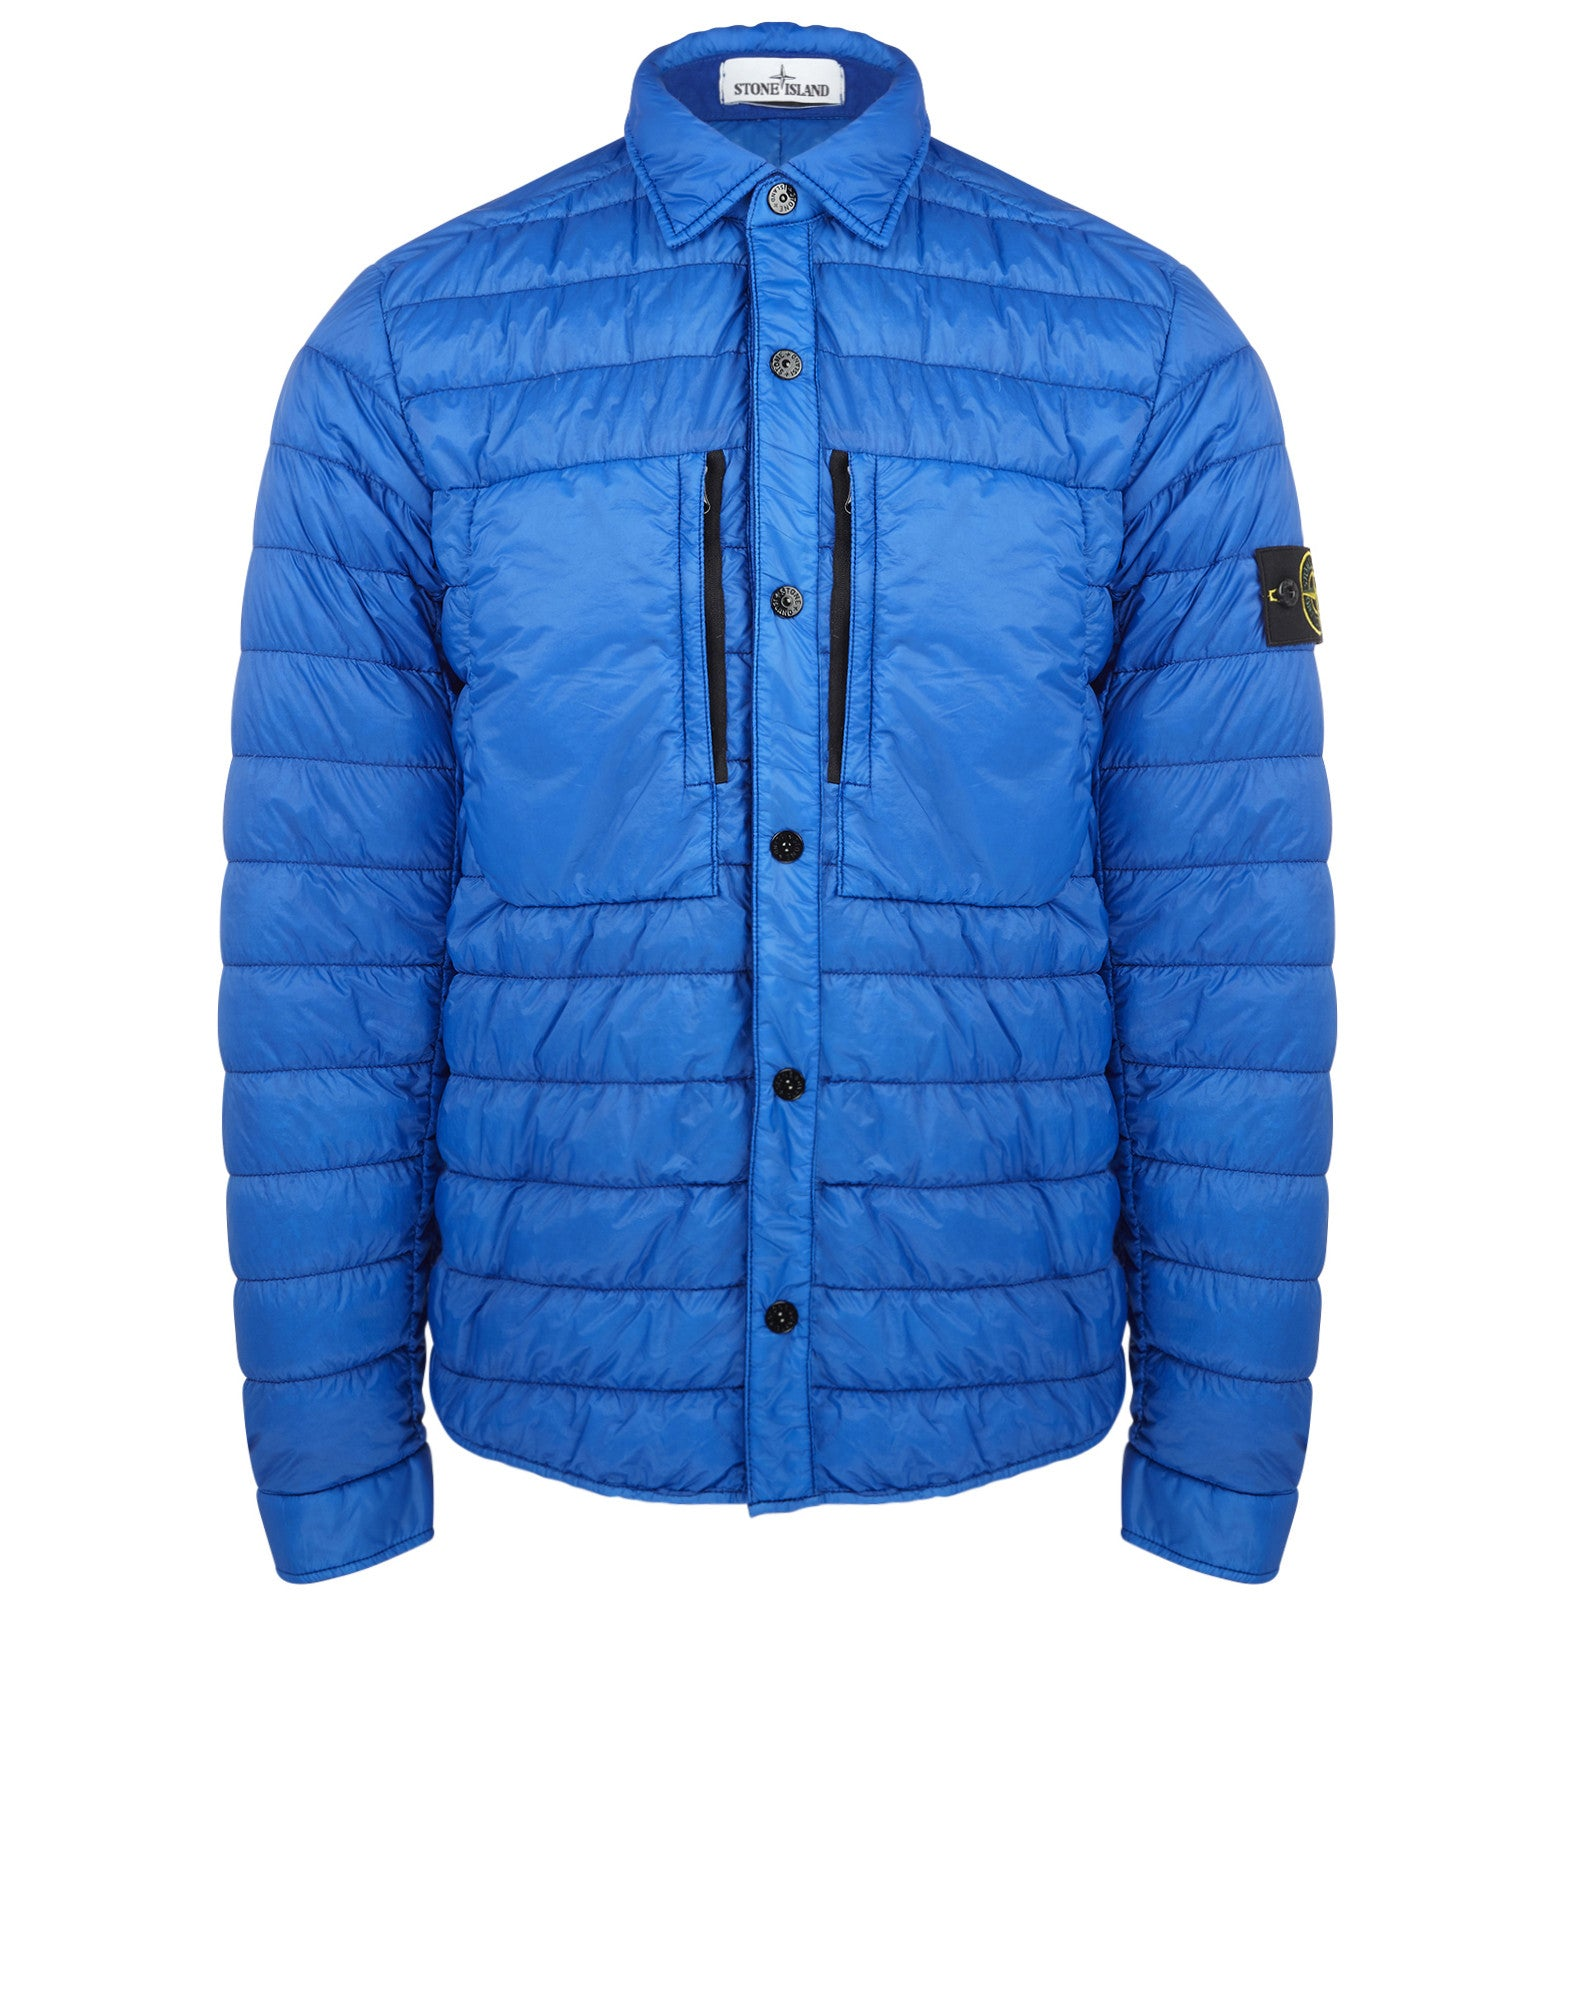 Q0724 GARMENT DYED DOWN 26GR X SQM-NY Jacket in Blue